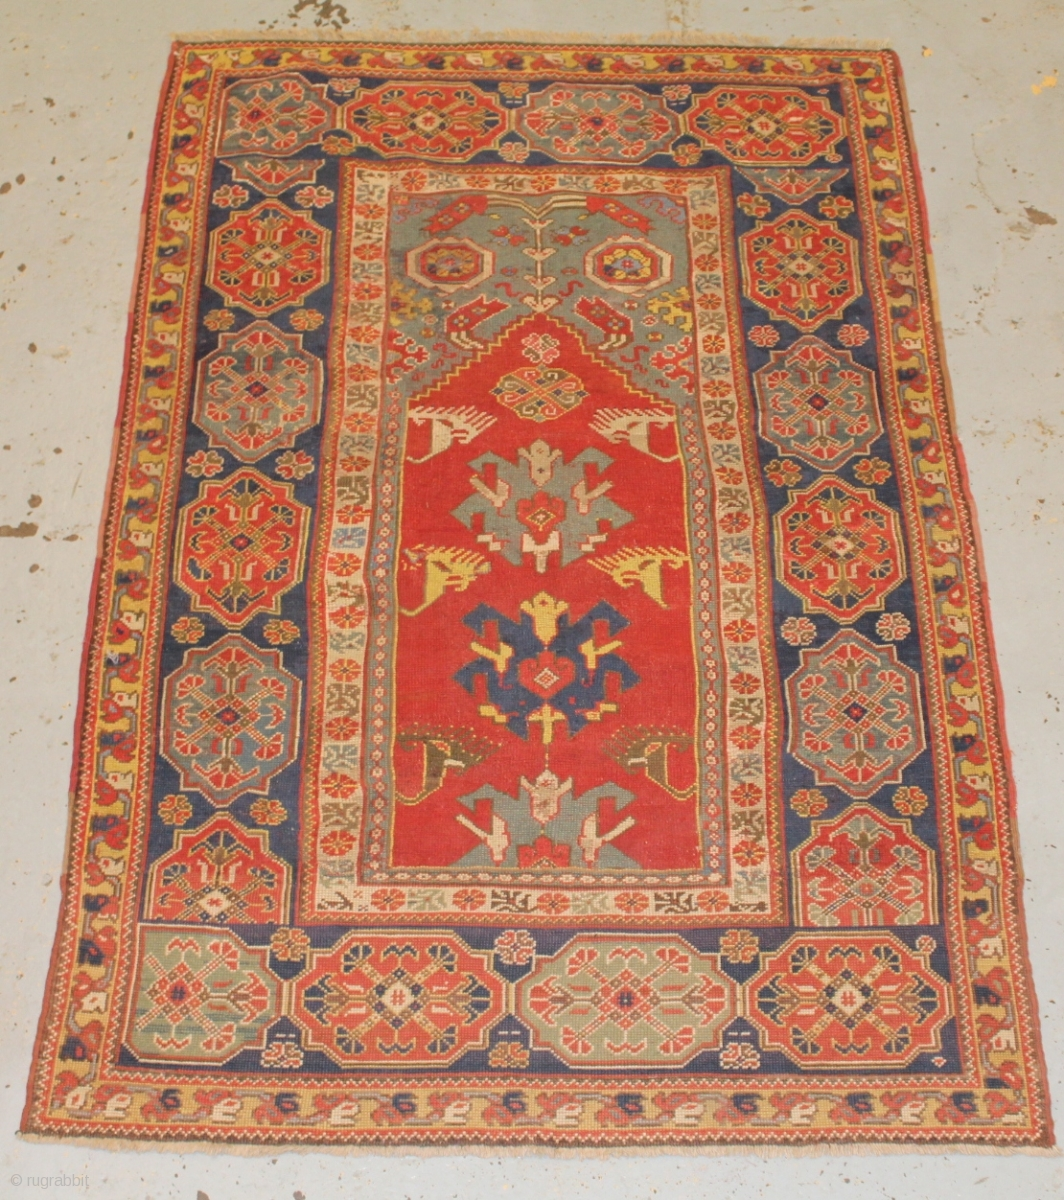 Prayer Rug Dimensions: 17th Century Transylvanian Prayer Rug ,rewoven And Old